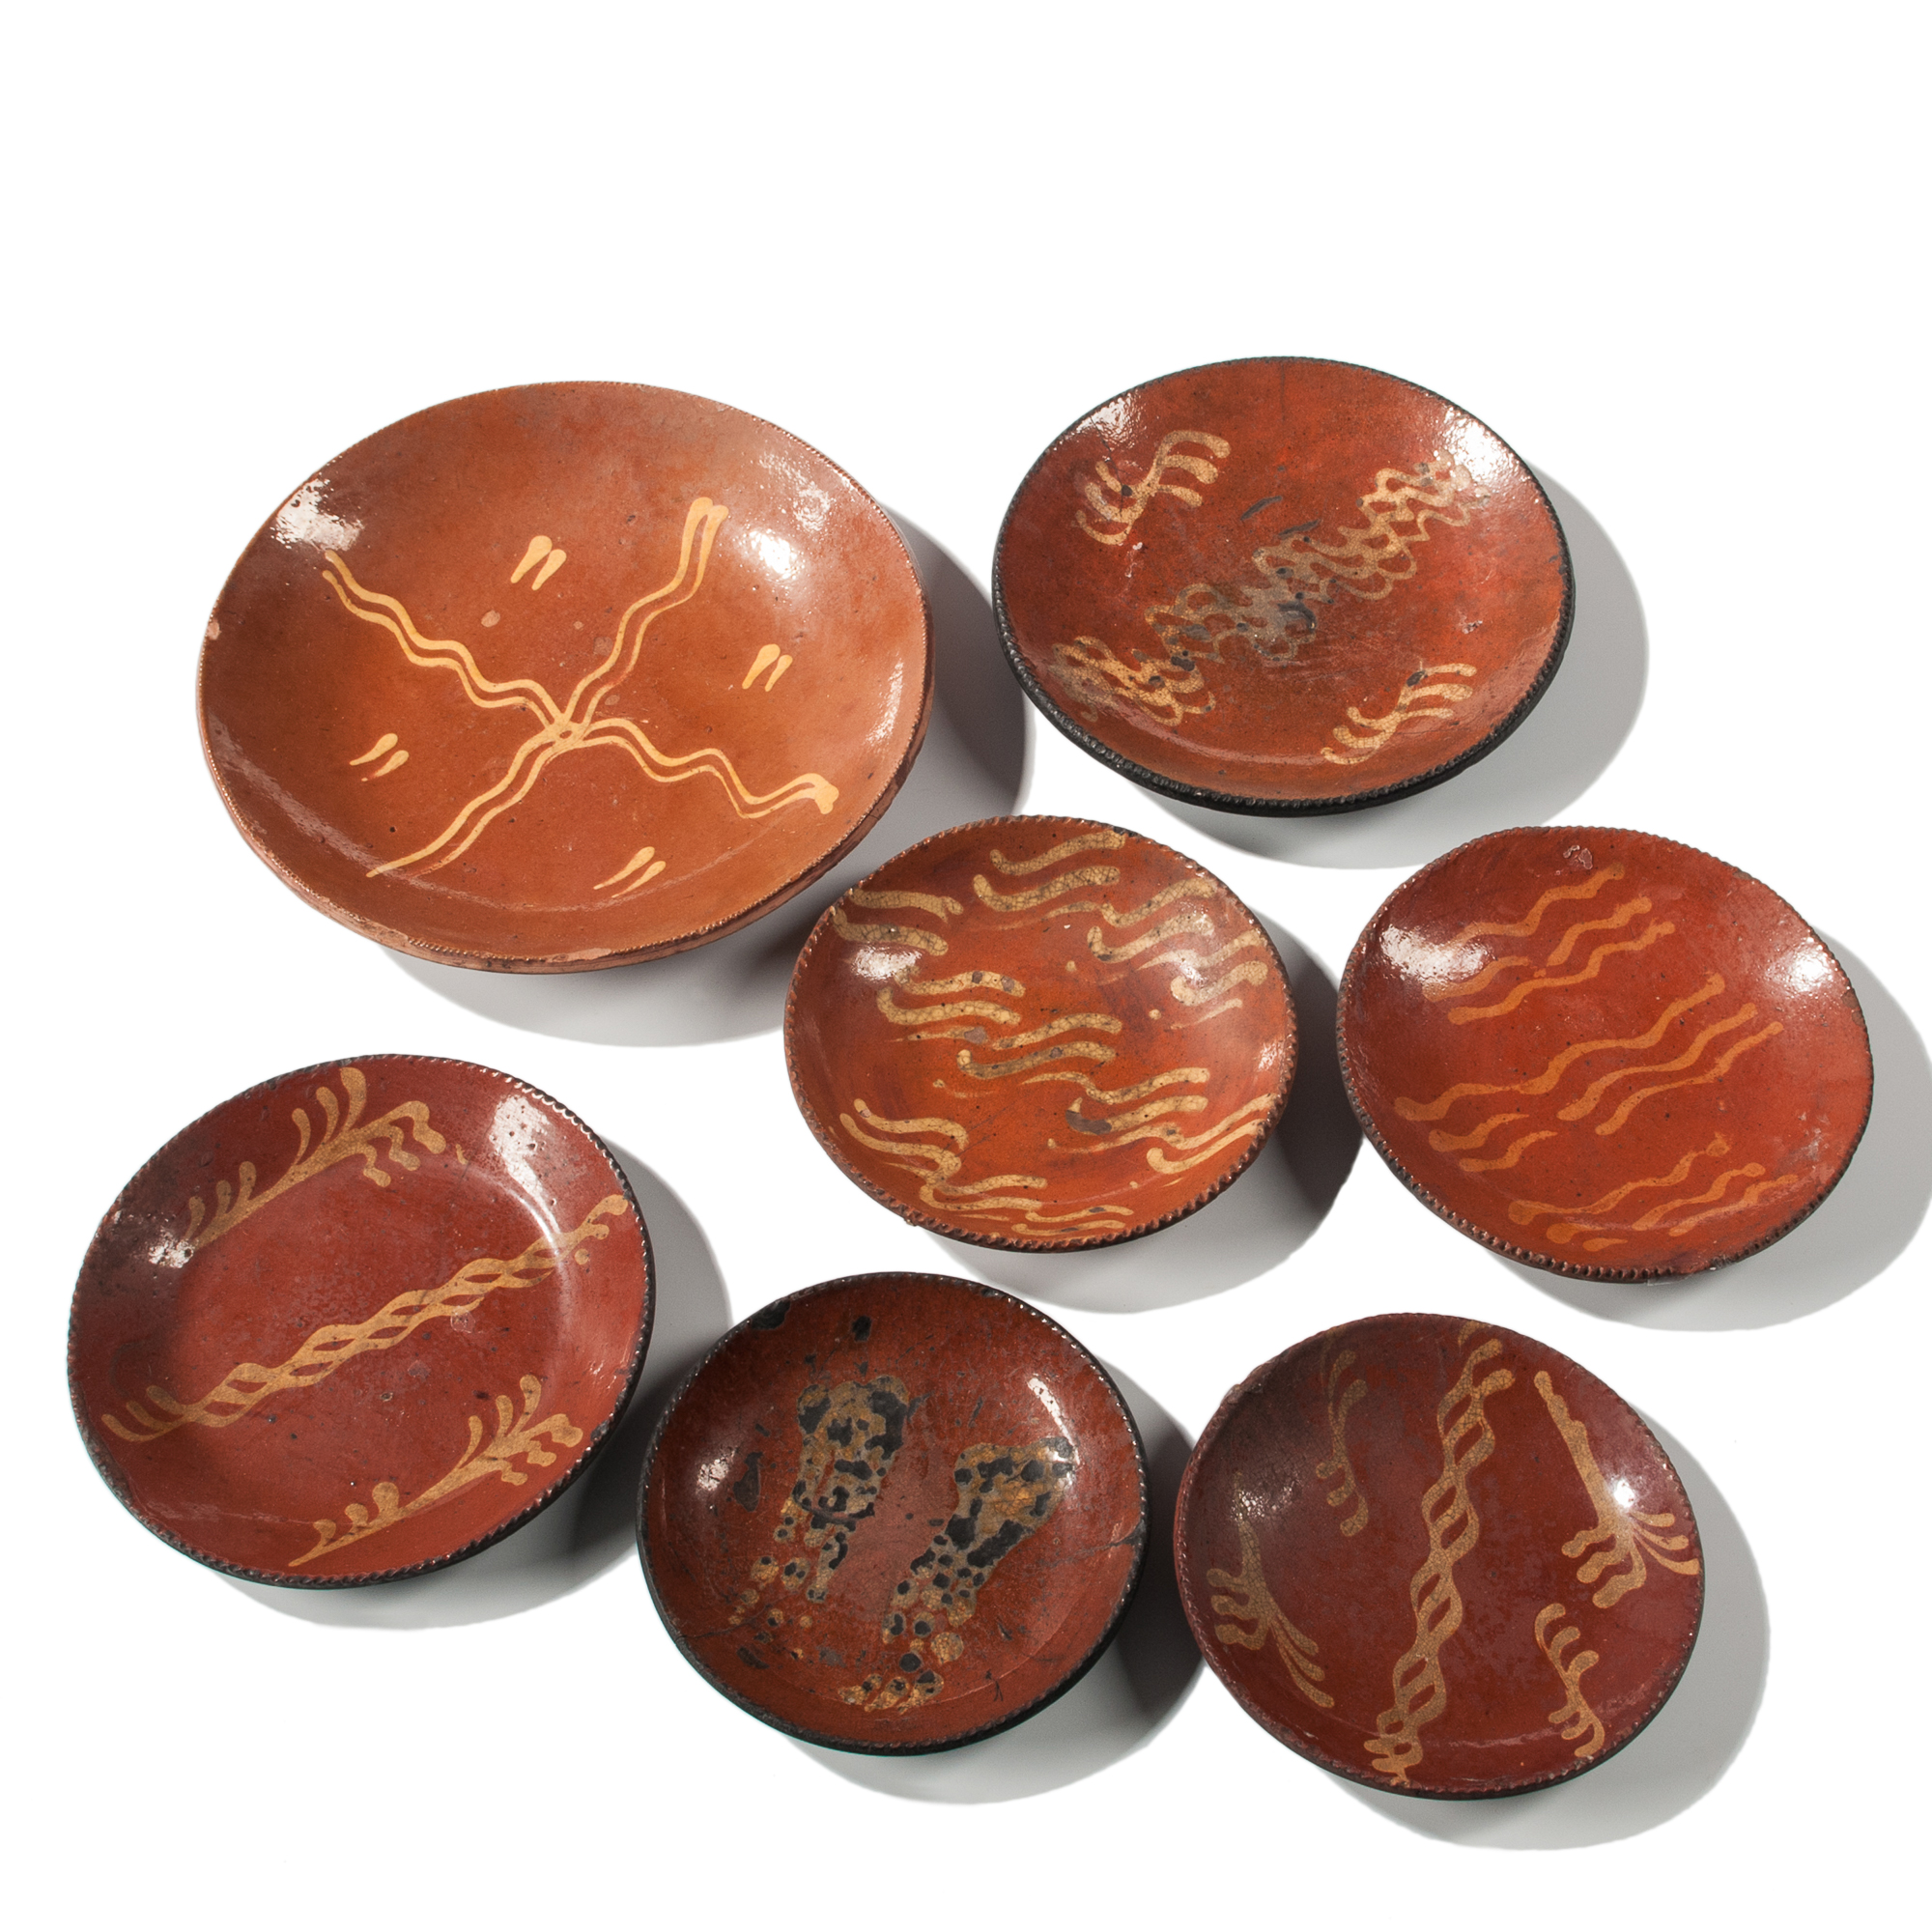 Seven Slip-decorated Redware Plates (Lot 1275, Estimate: $600-800)